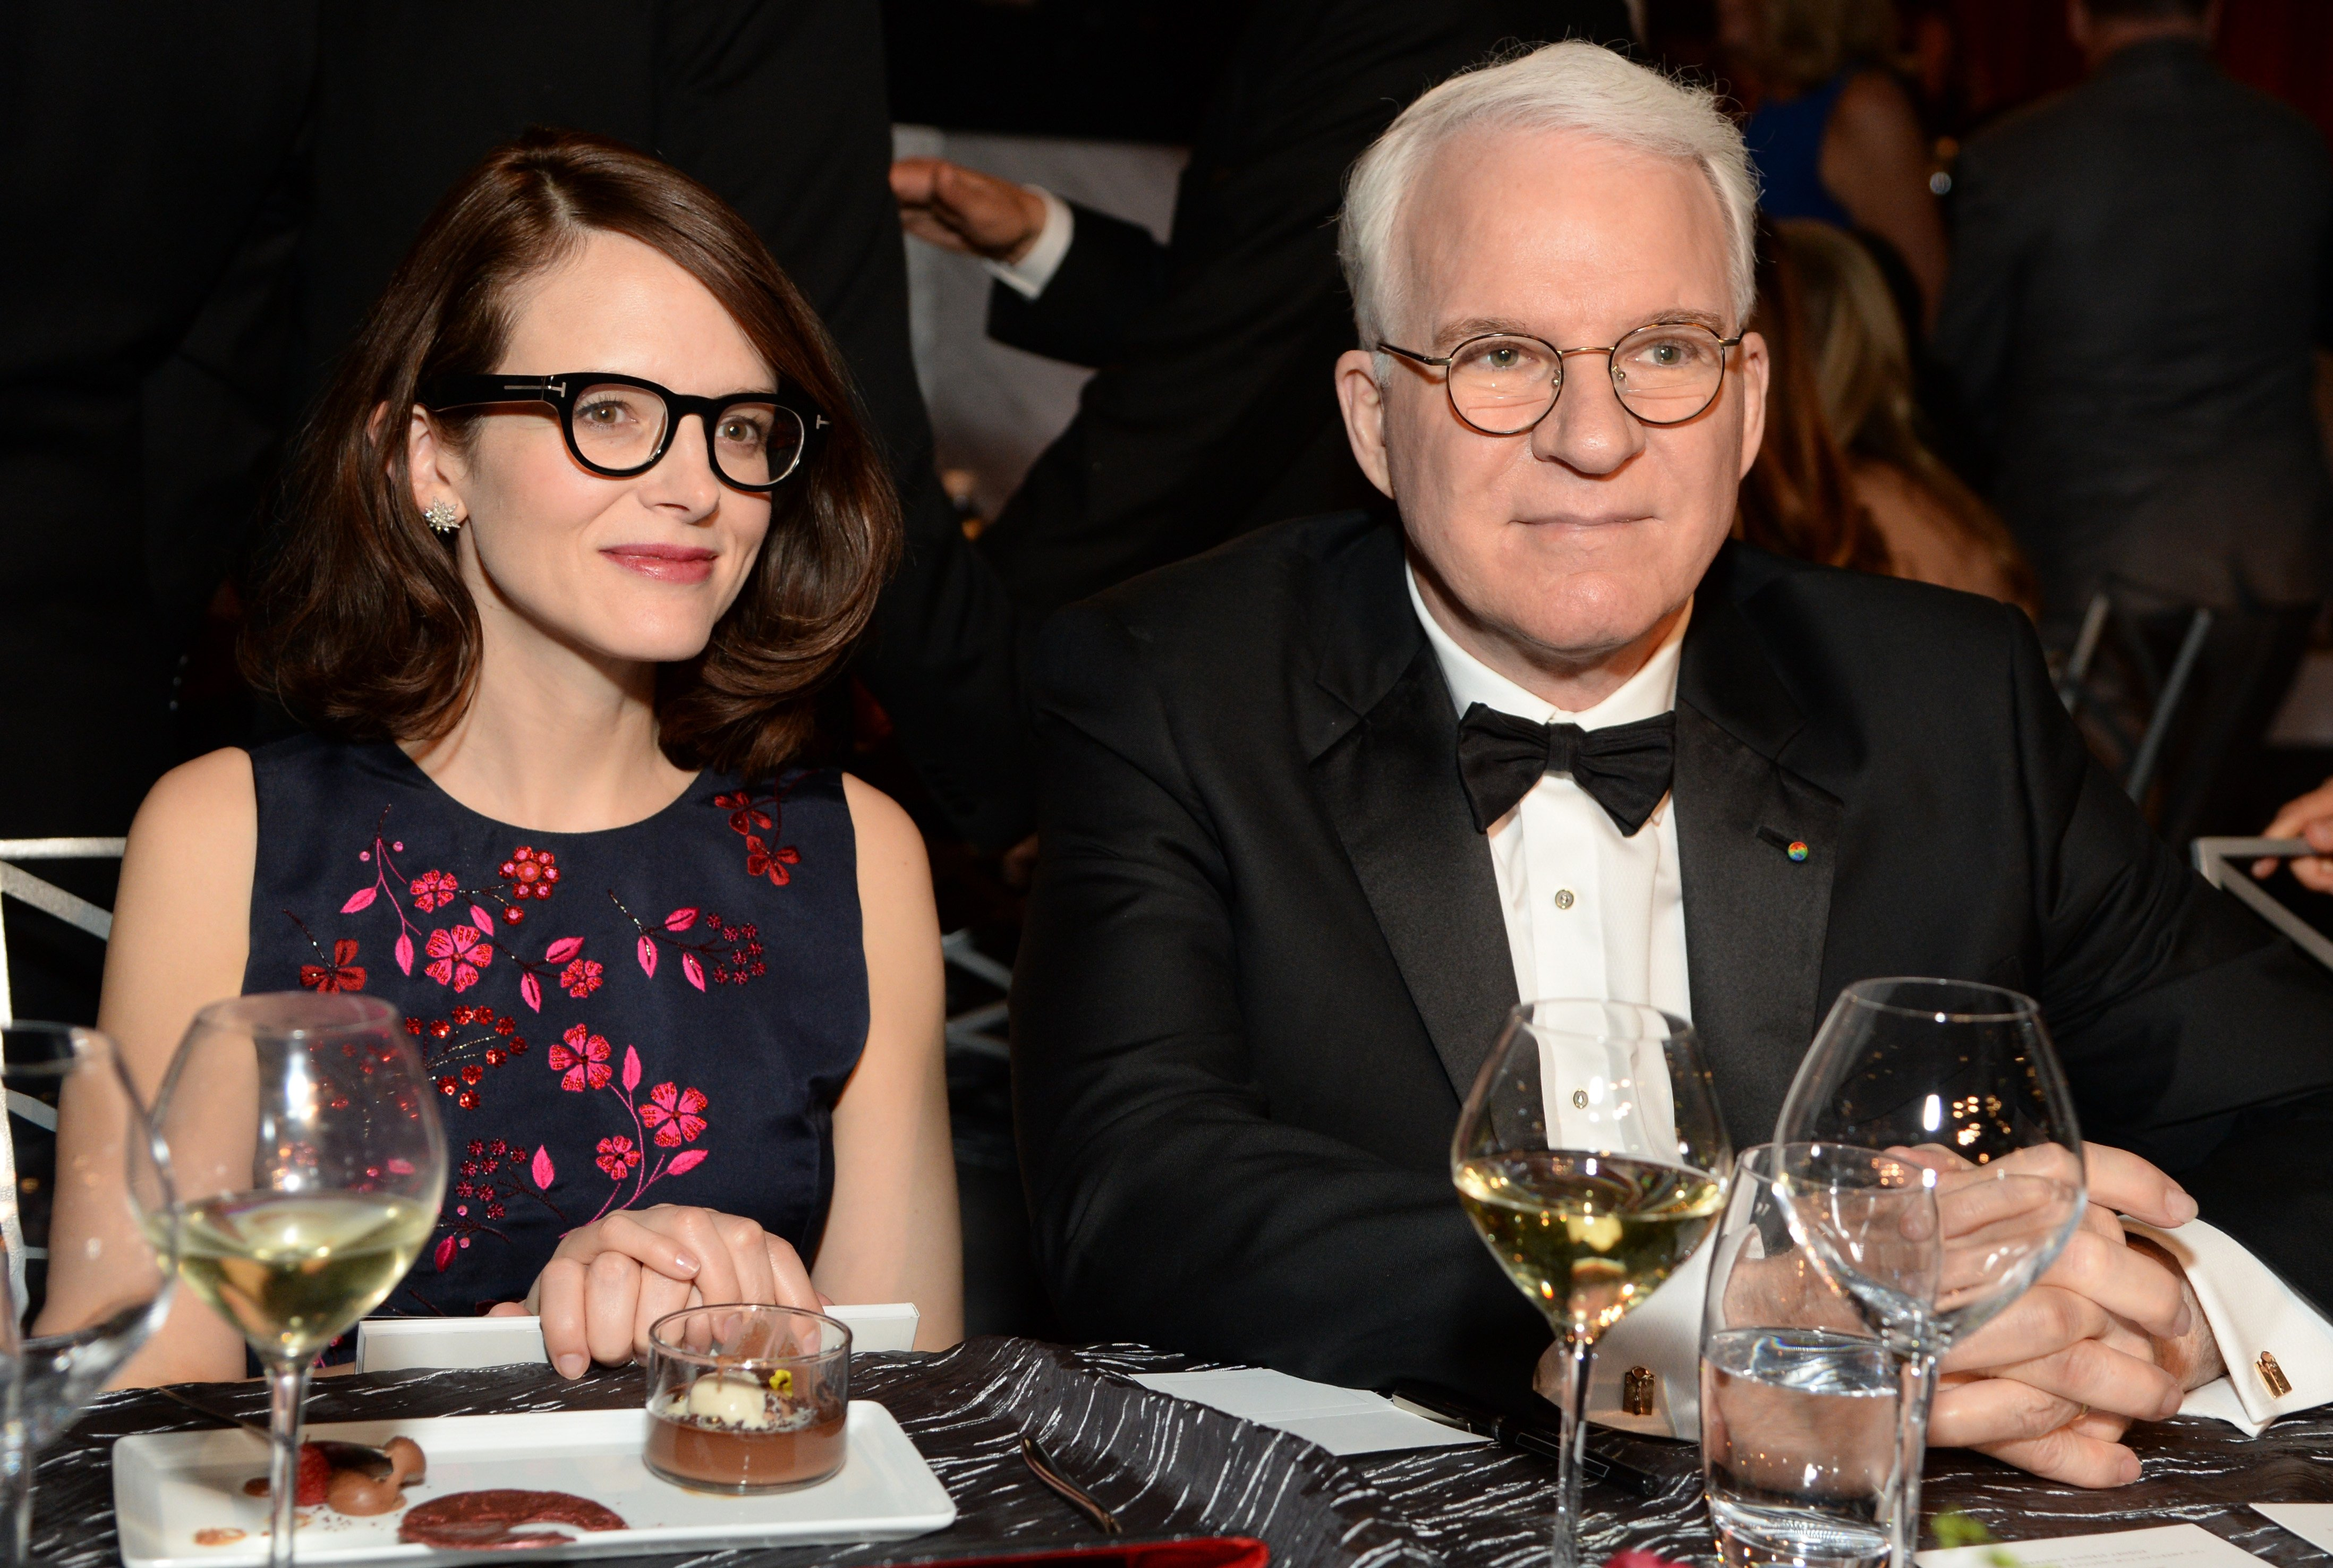 Anne Stringfield and Steve Martin attend the AFI Life Achievement Award Gala in Hollywood, California on June 4, 2015 | Photo: Getty Images